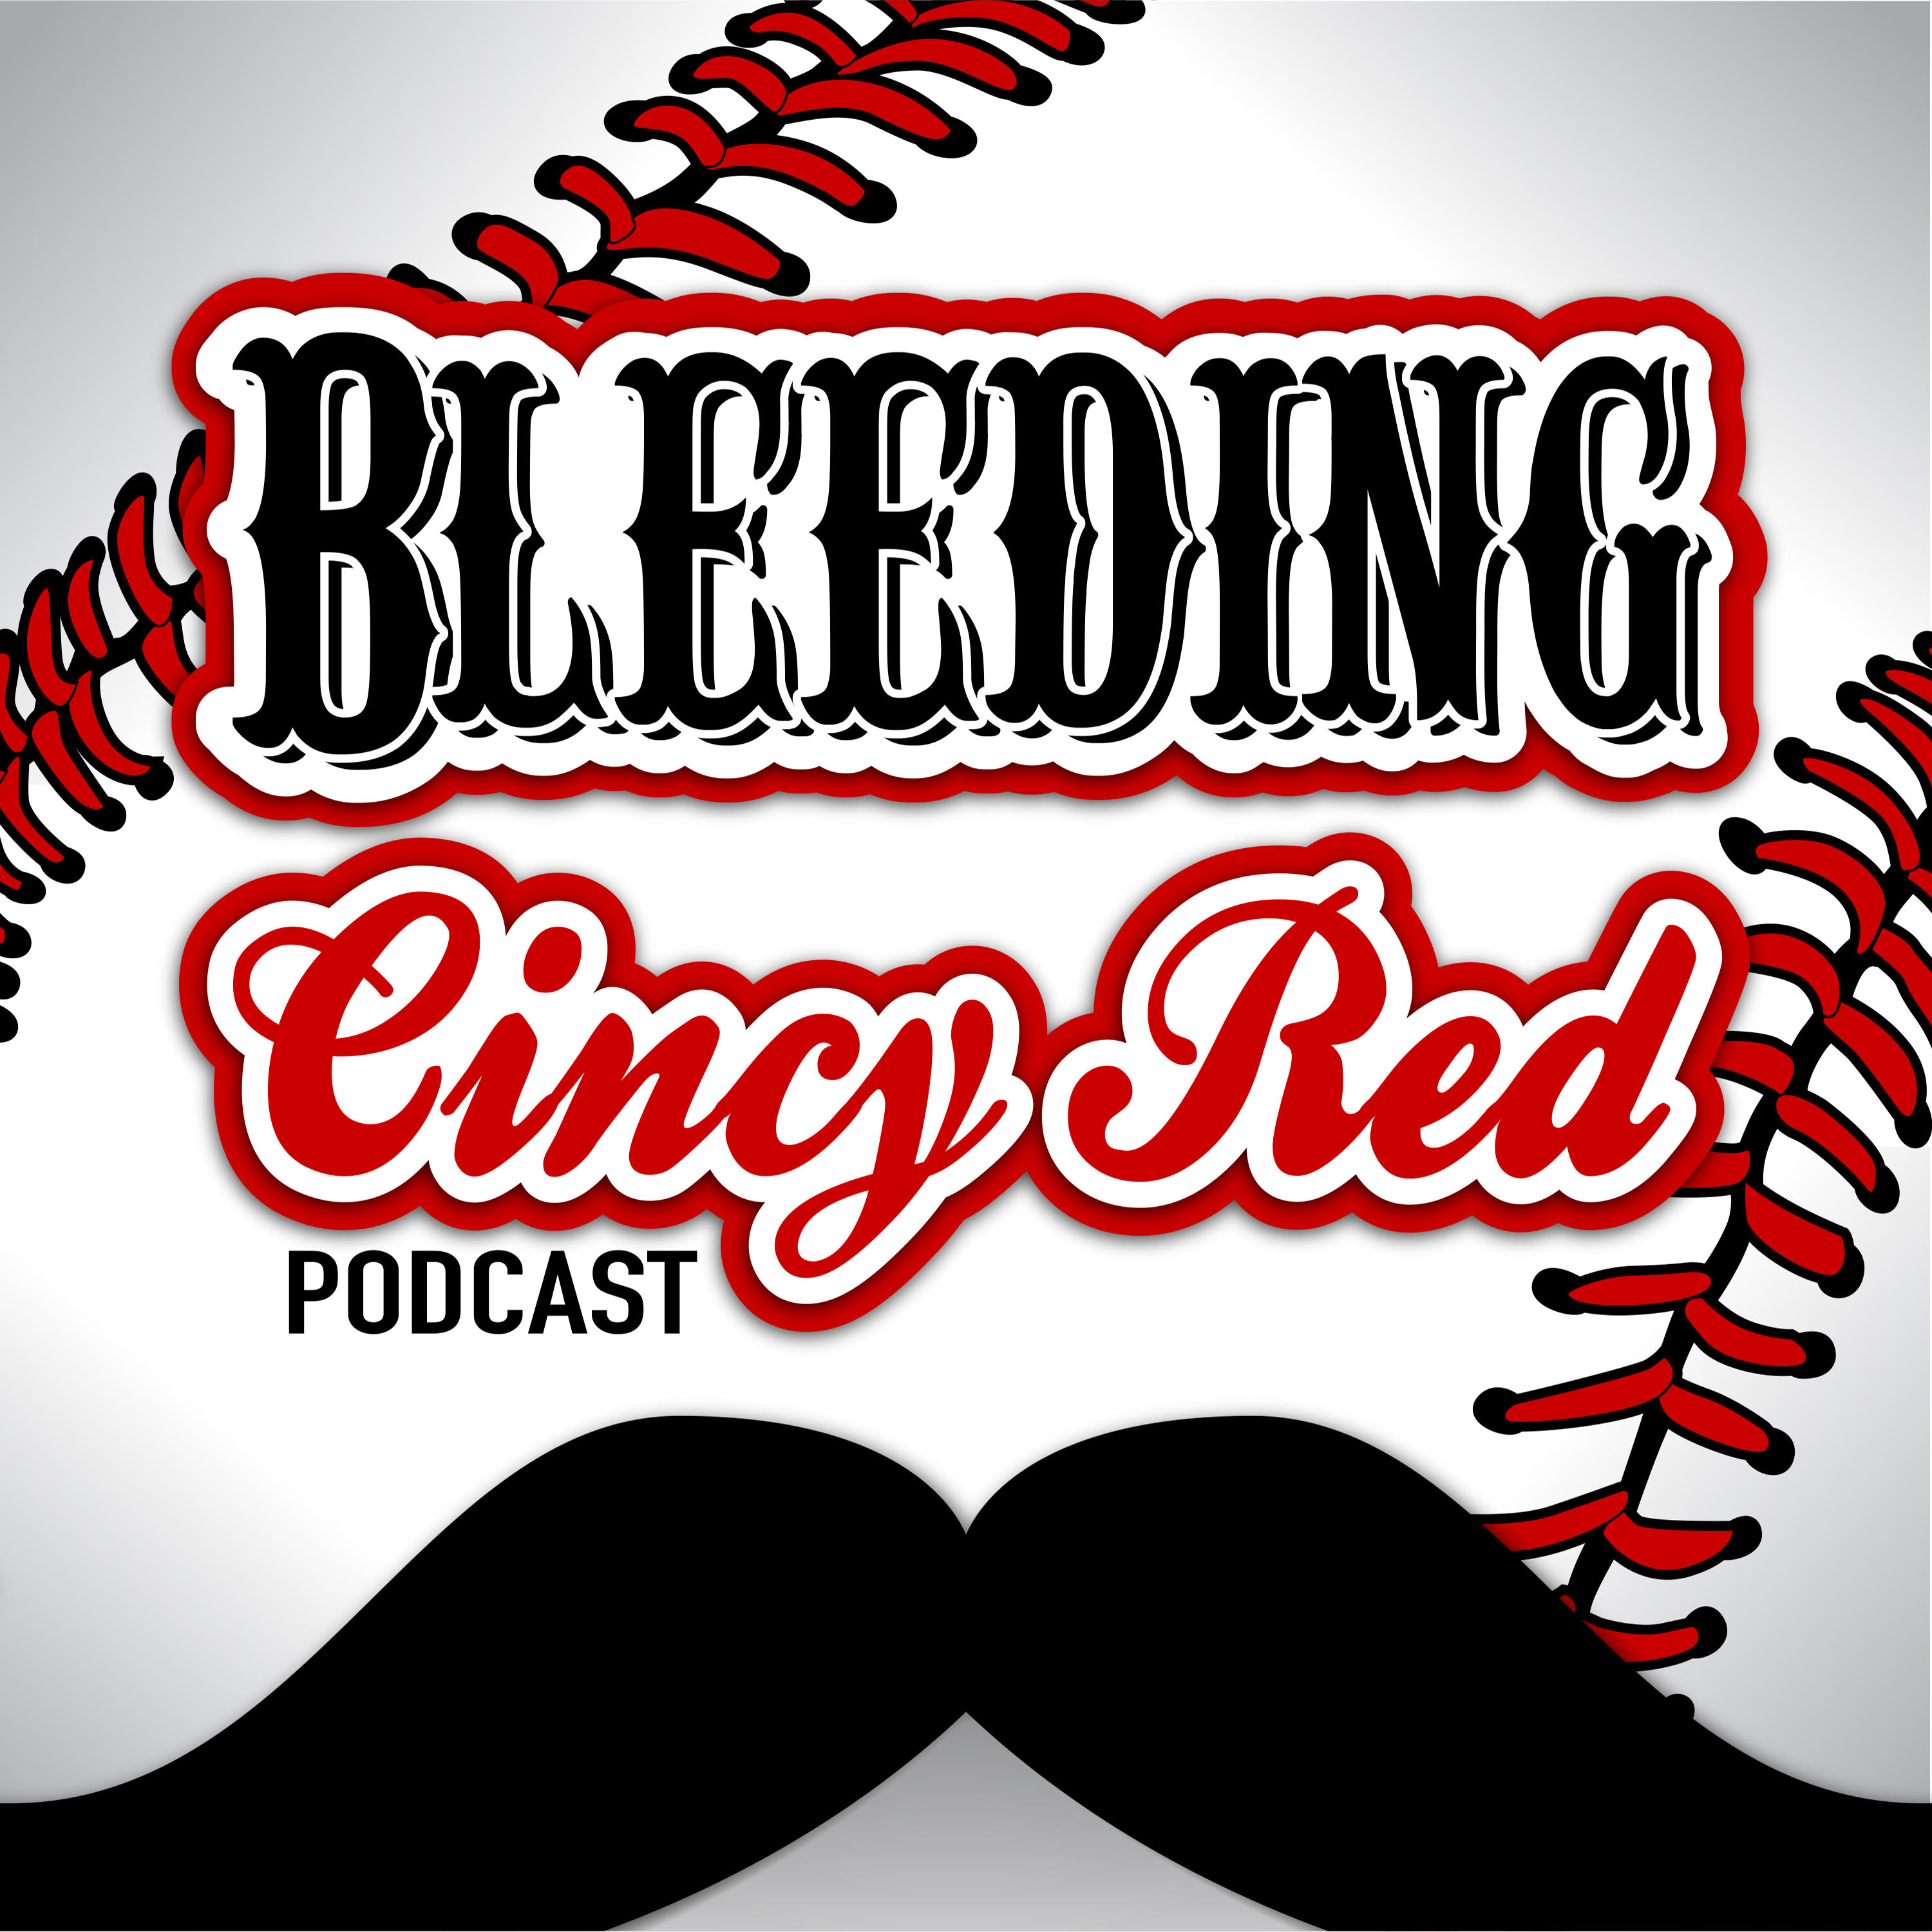 Episode 10 – All Star Break and Second Half of 2018 Reds Outlook